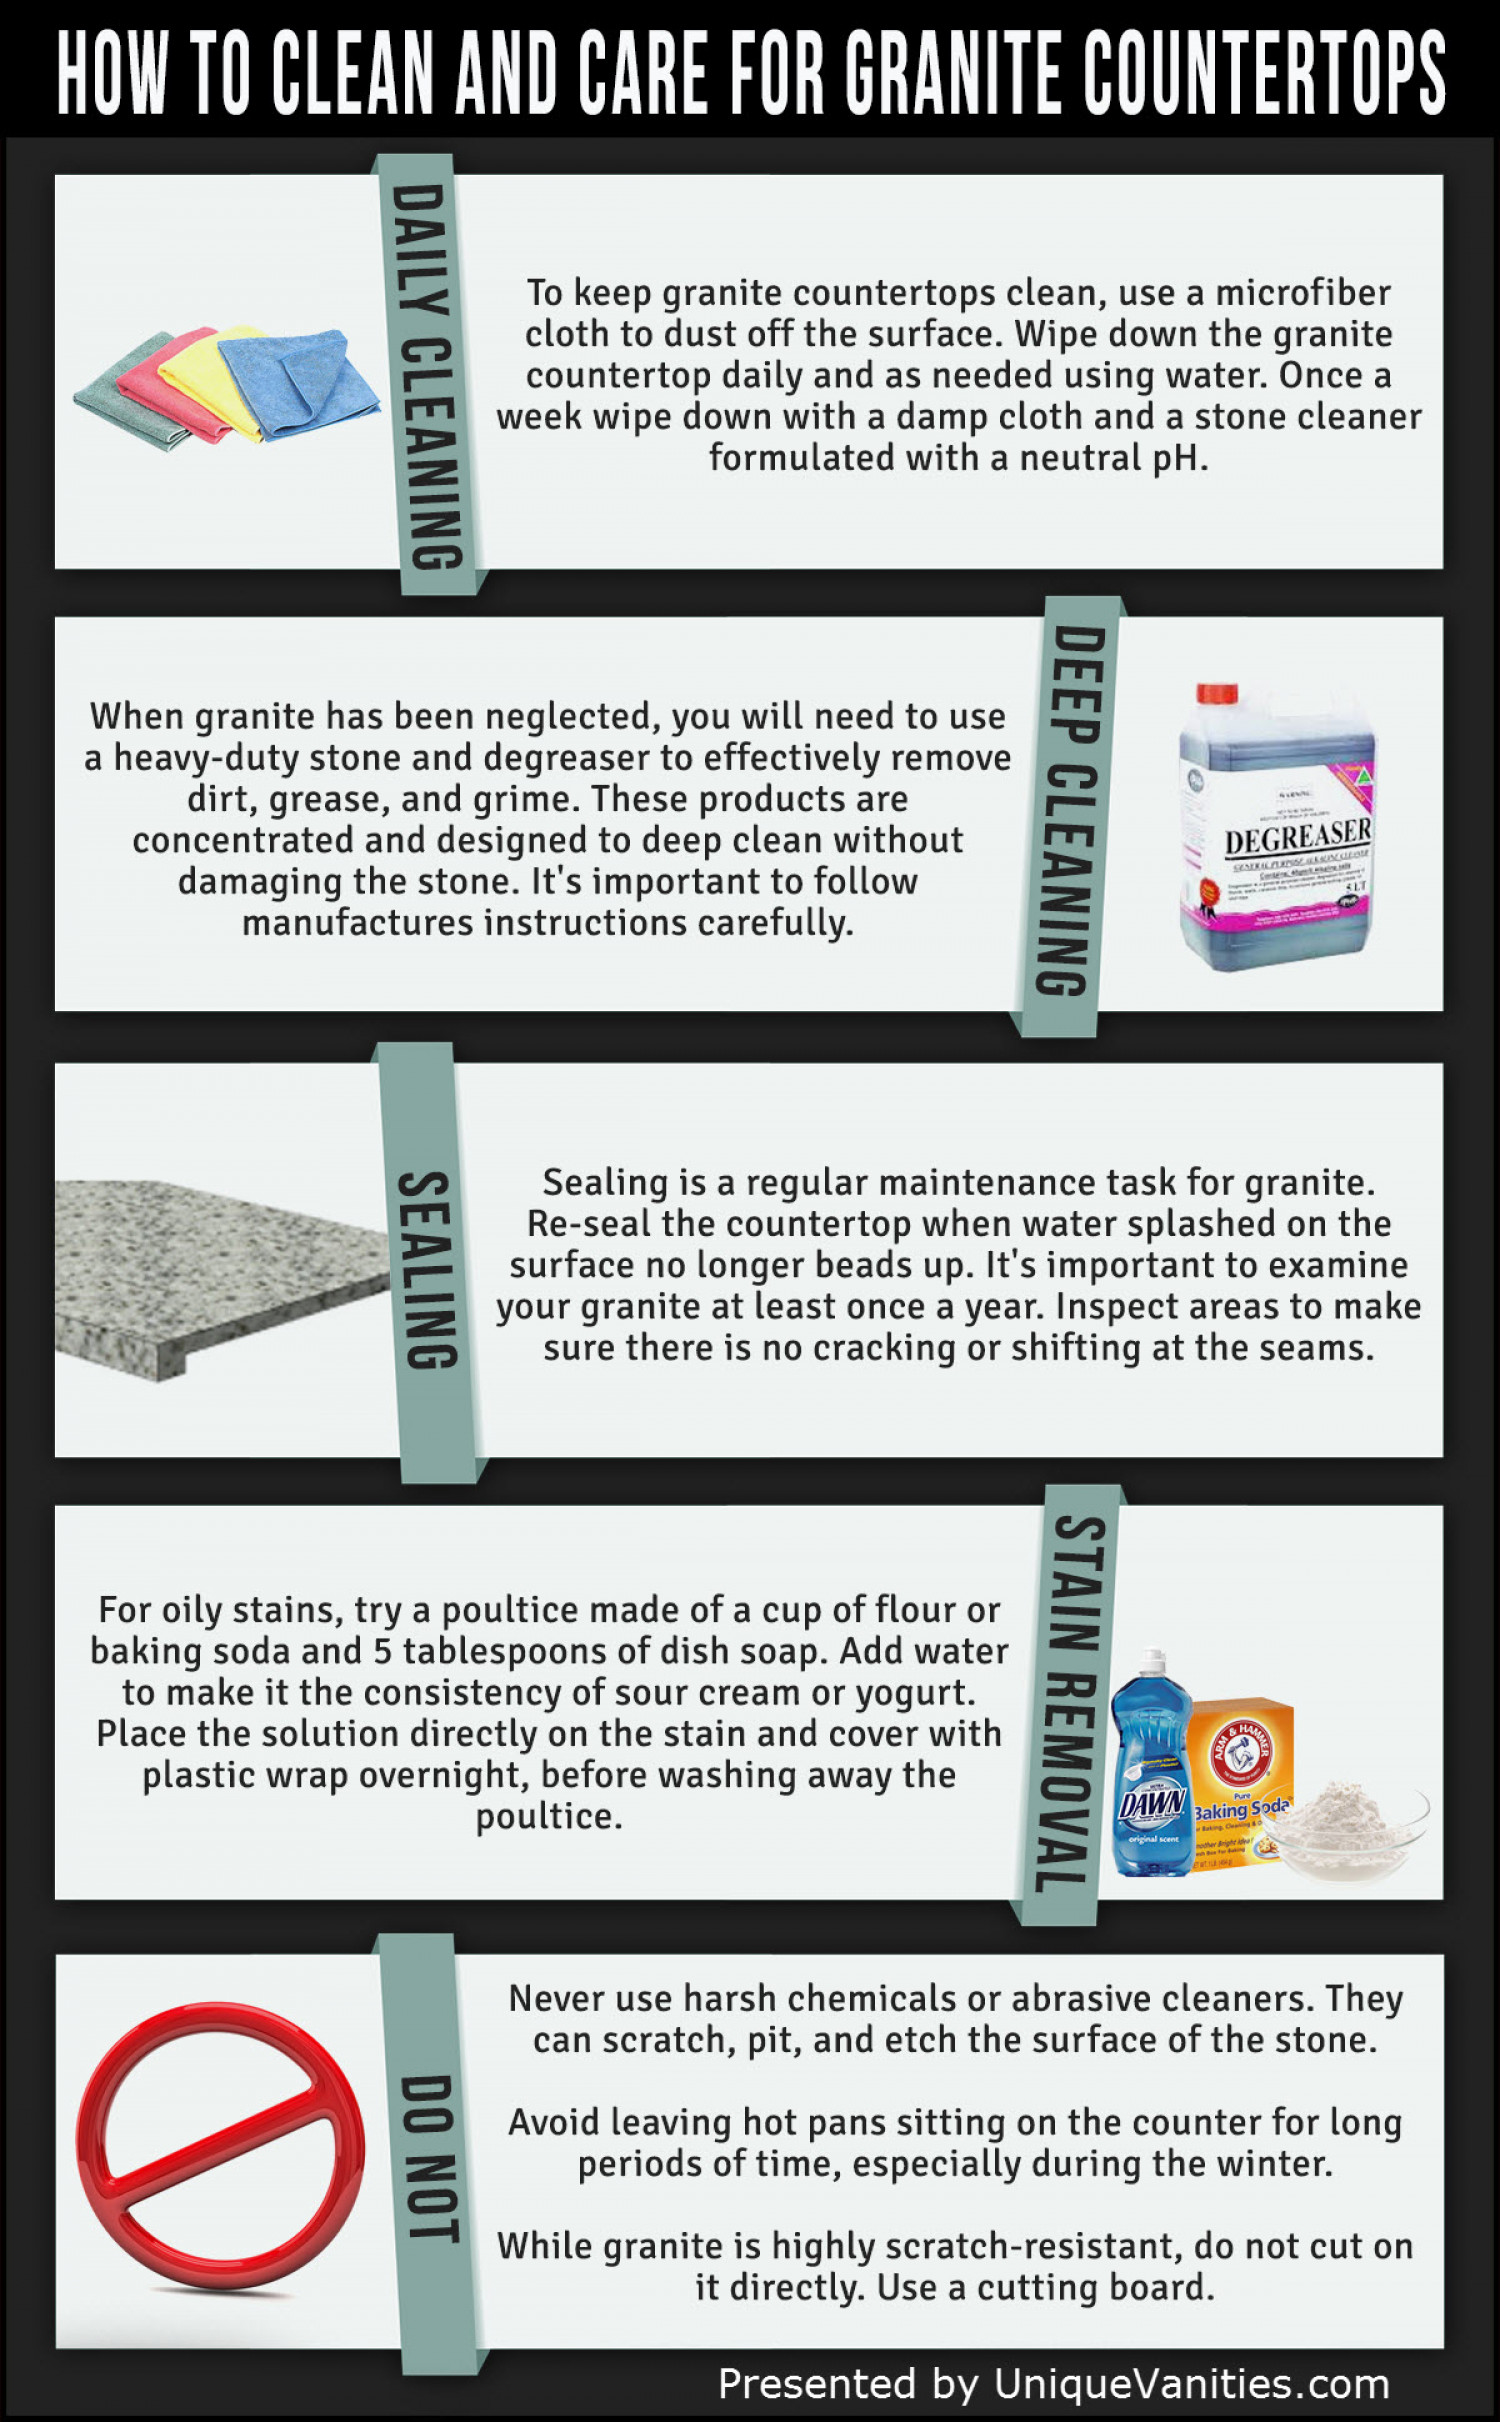 How To Clean And Care For Granite Countertops Infographic